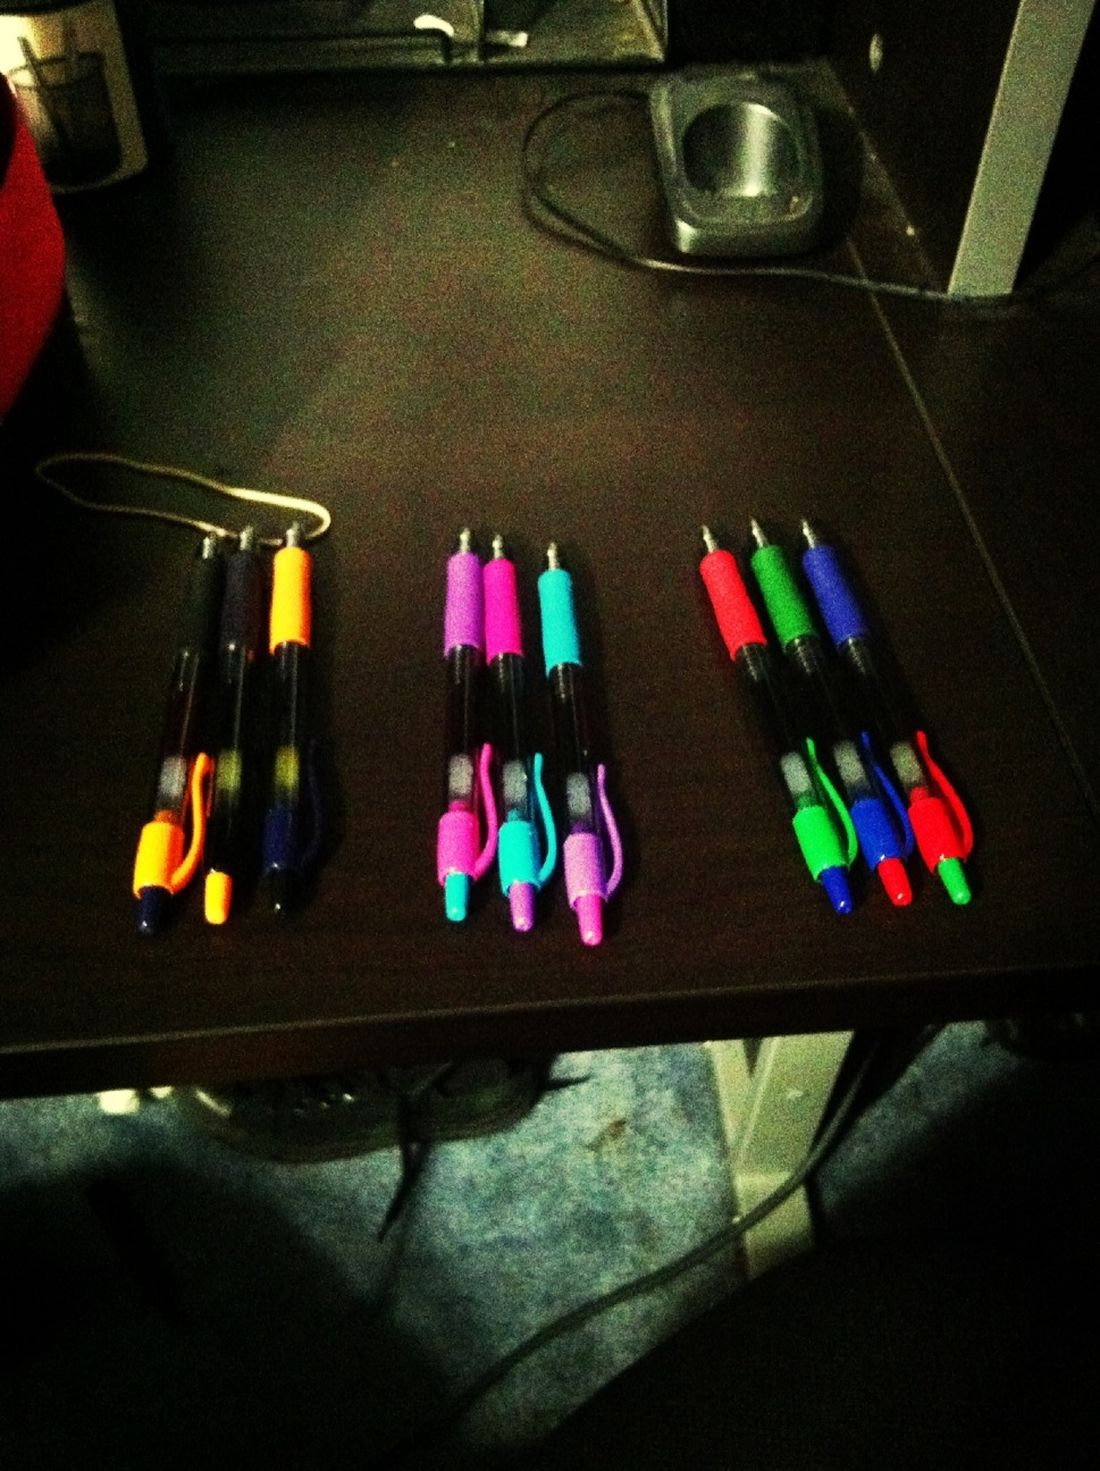 My Colorful Pens